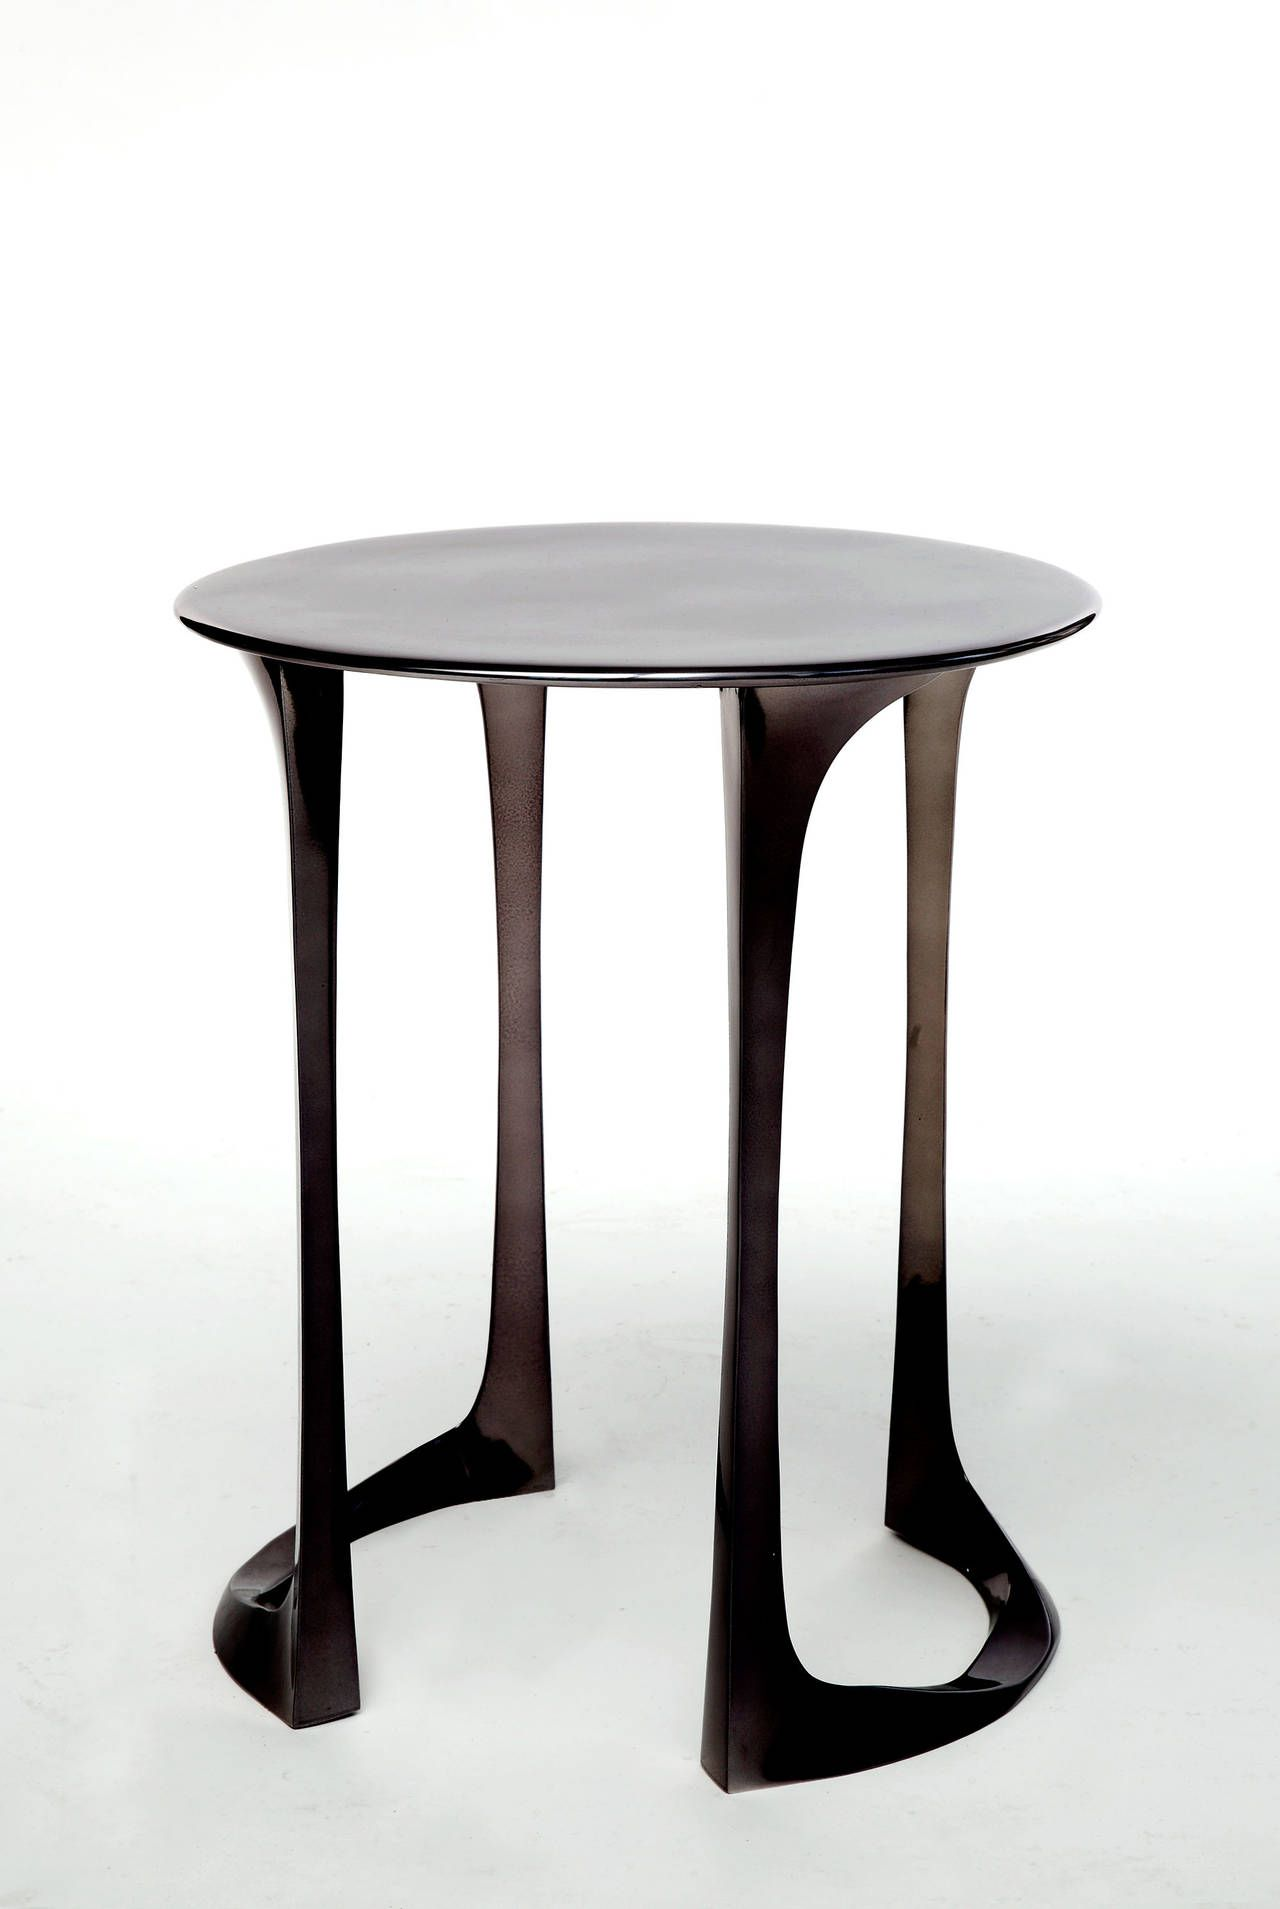 Sitzbank Valerie Pin By Nicole Fetscher On 43art And Objects Table Furniture